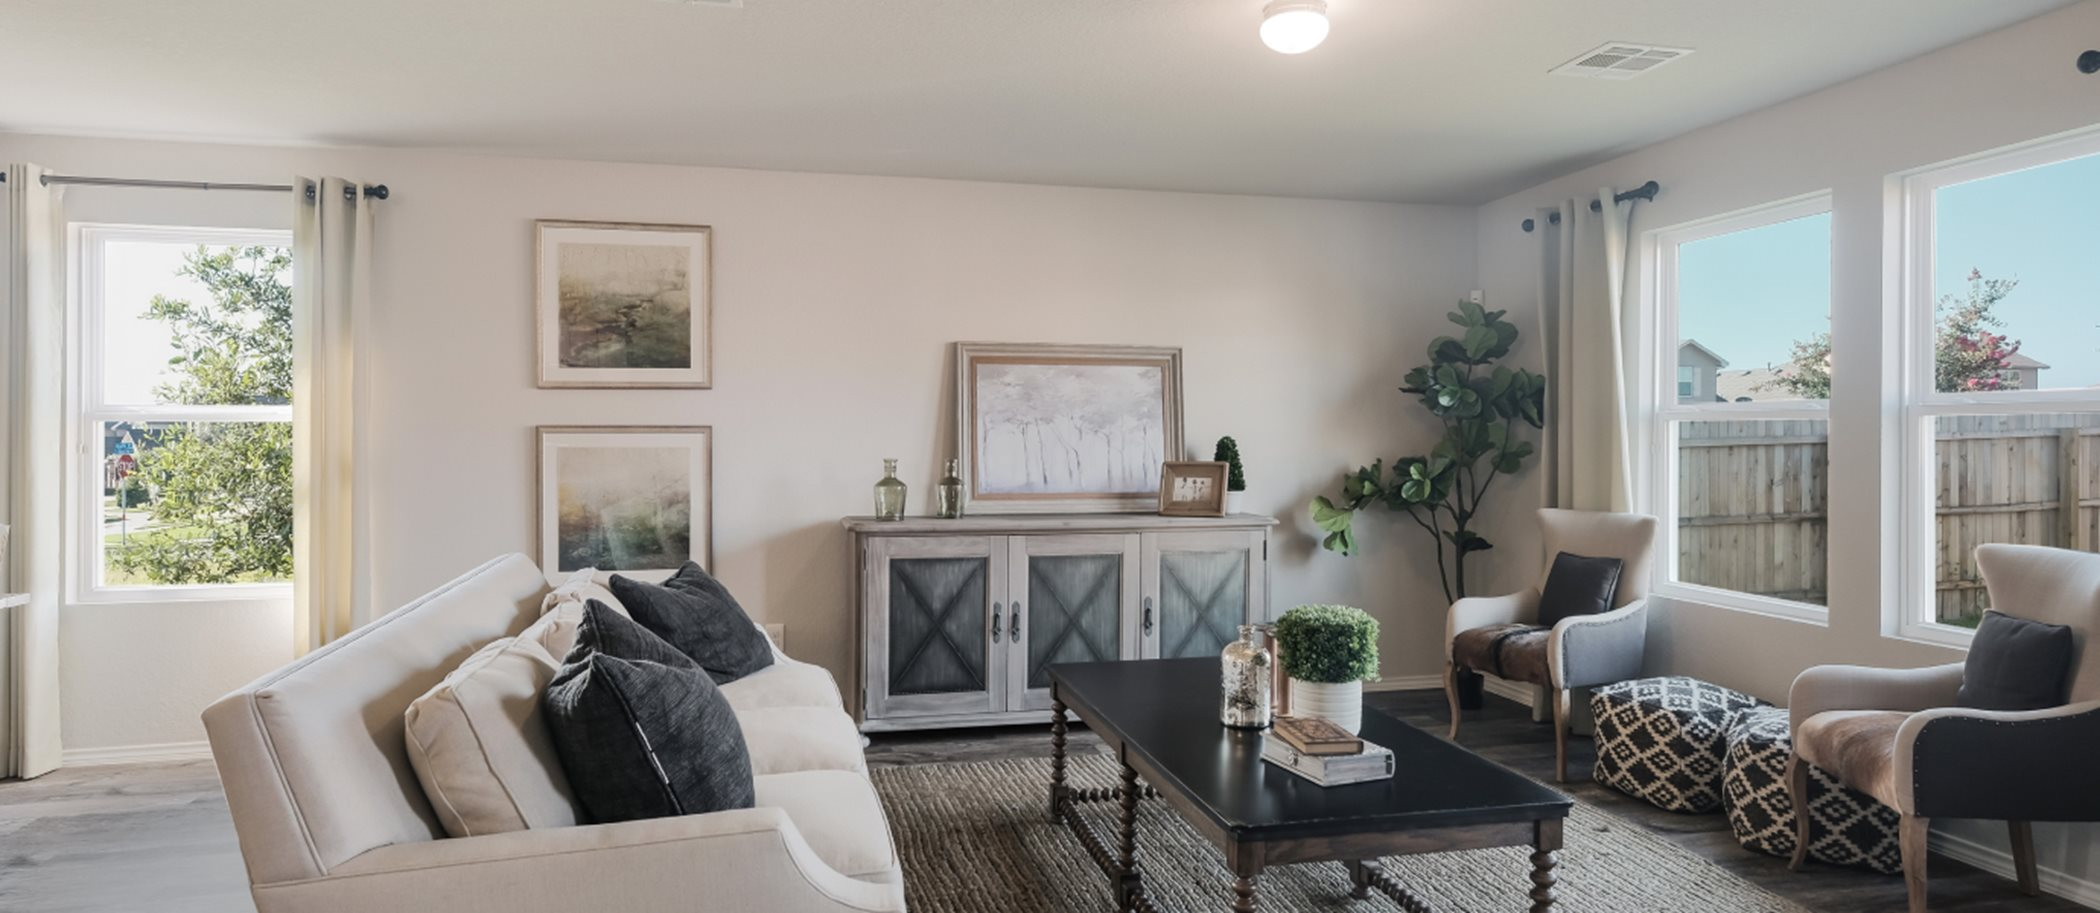 Voss-Farms Watermill Collection Nettleton Room